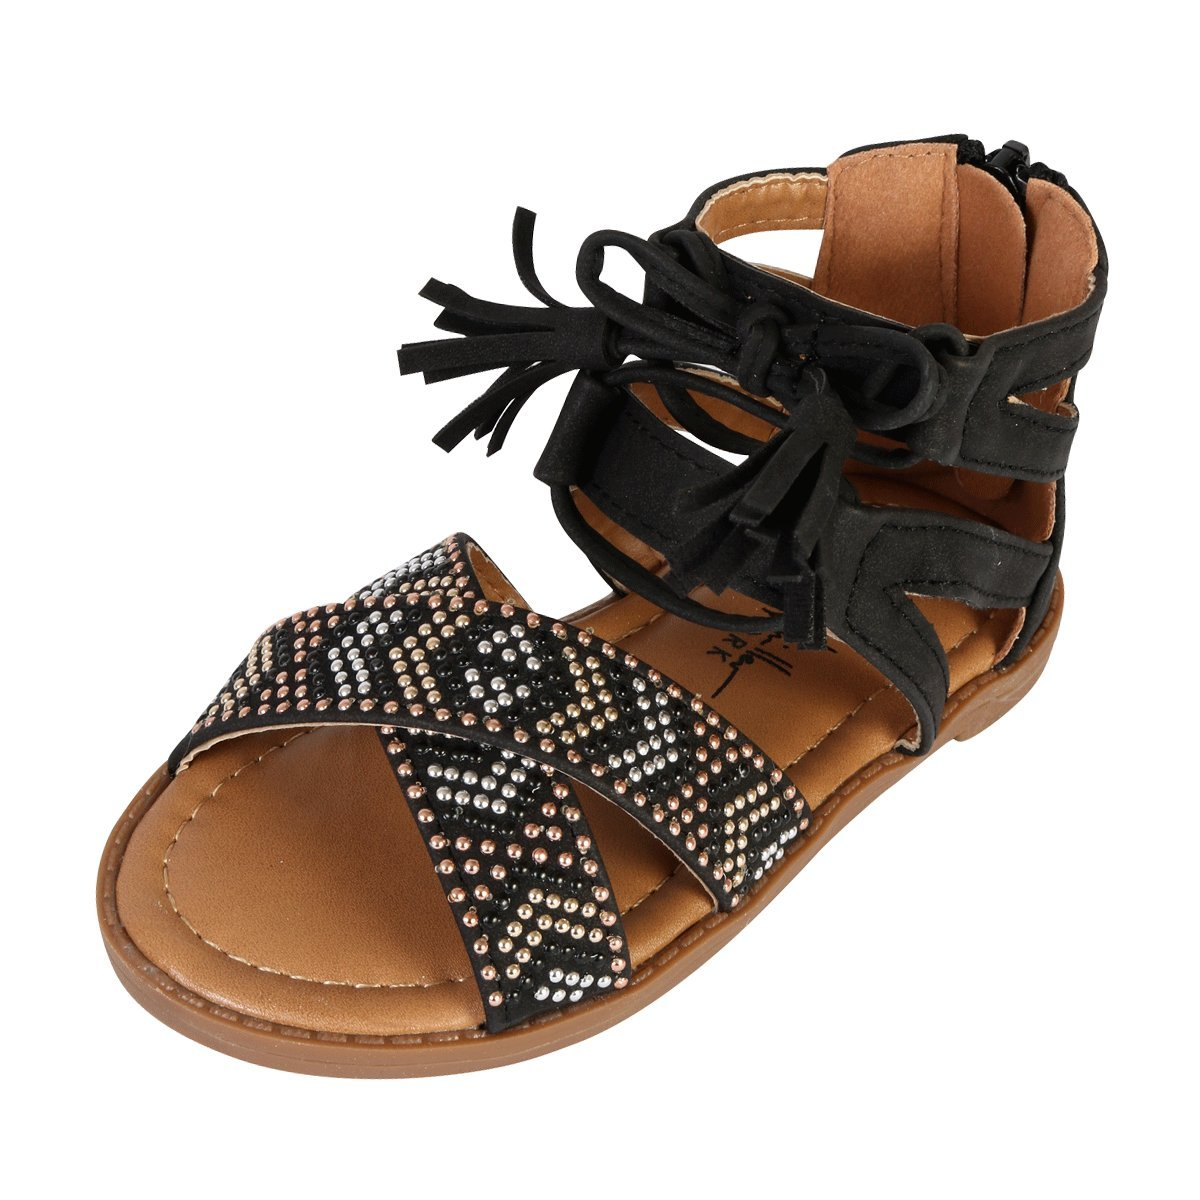 23aae89766e1 Adorable Open Toe Gladiator Strap Sandal Gold and Silver Metallic Studs  Adorn the Front Cross Straps Back Zip for Easy On and Off with Faux ...